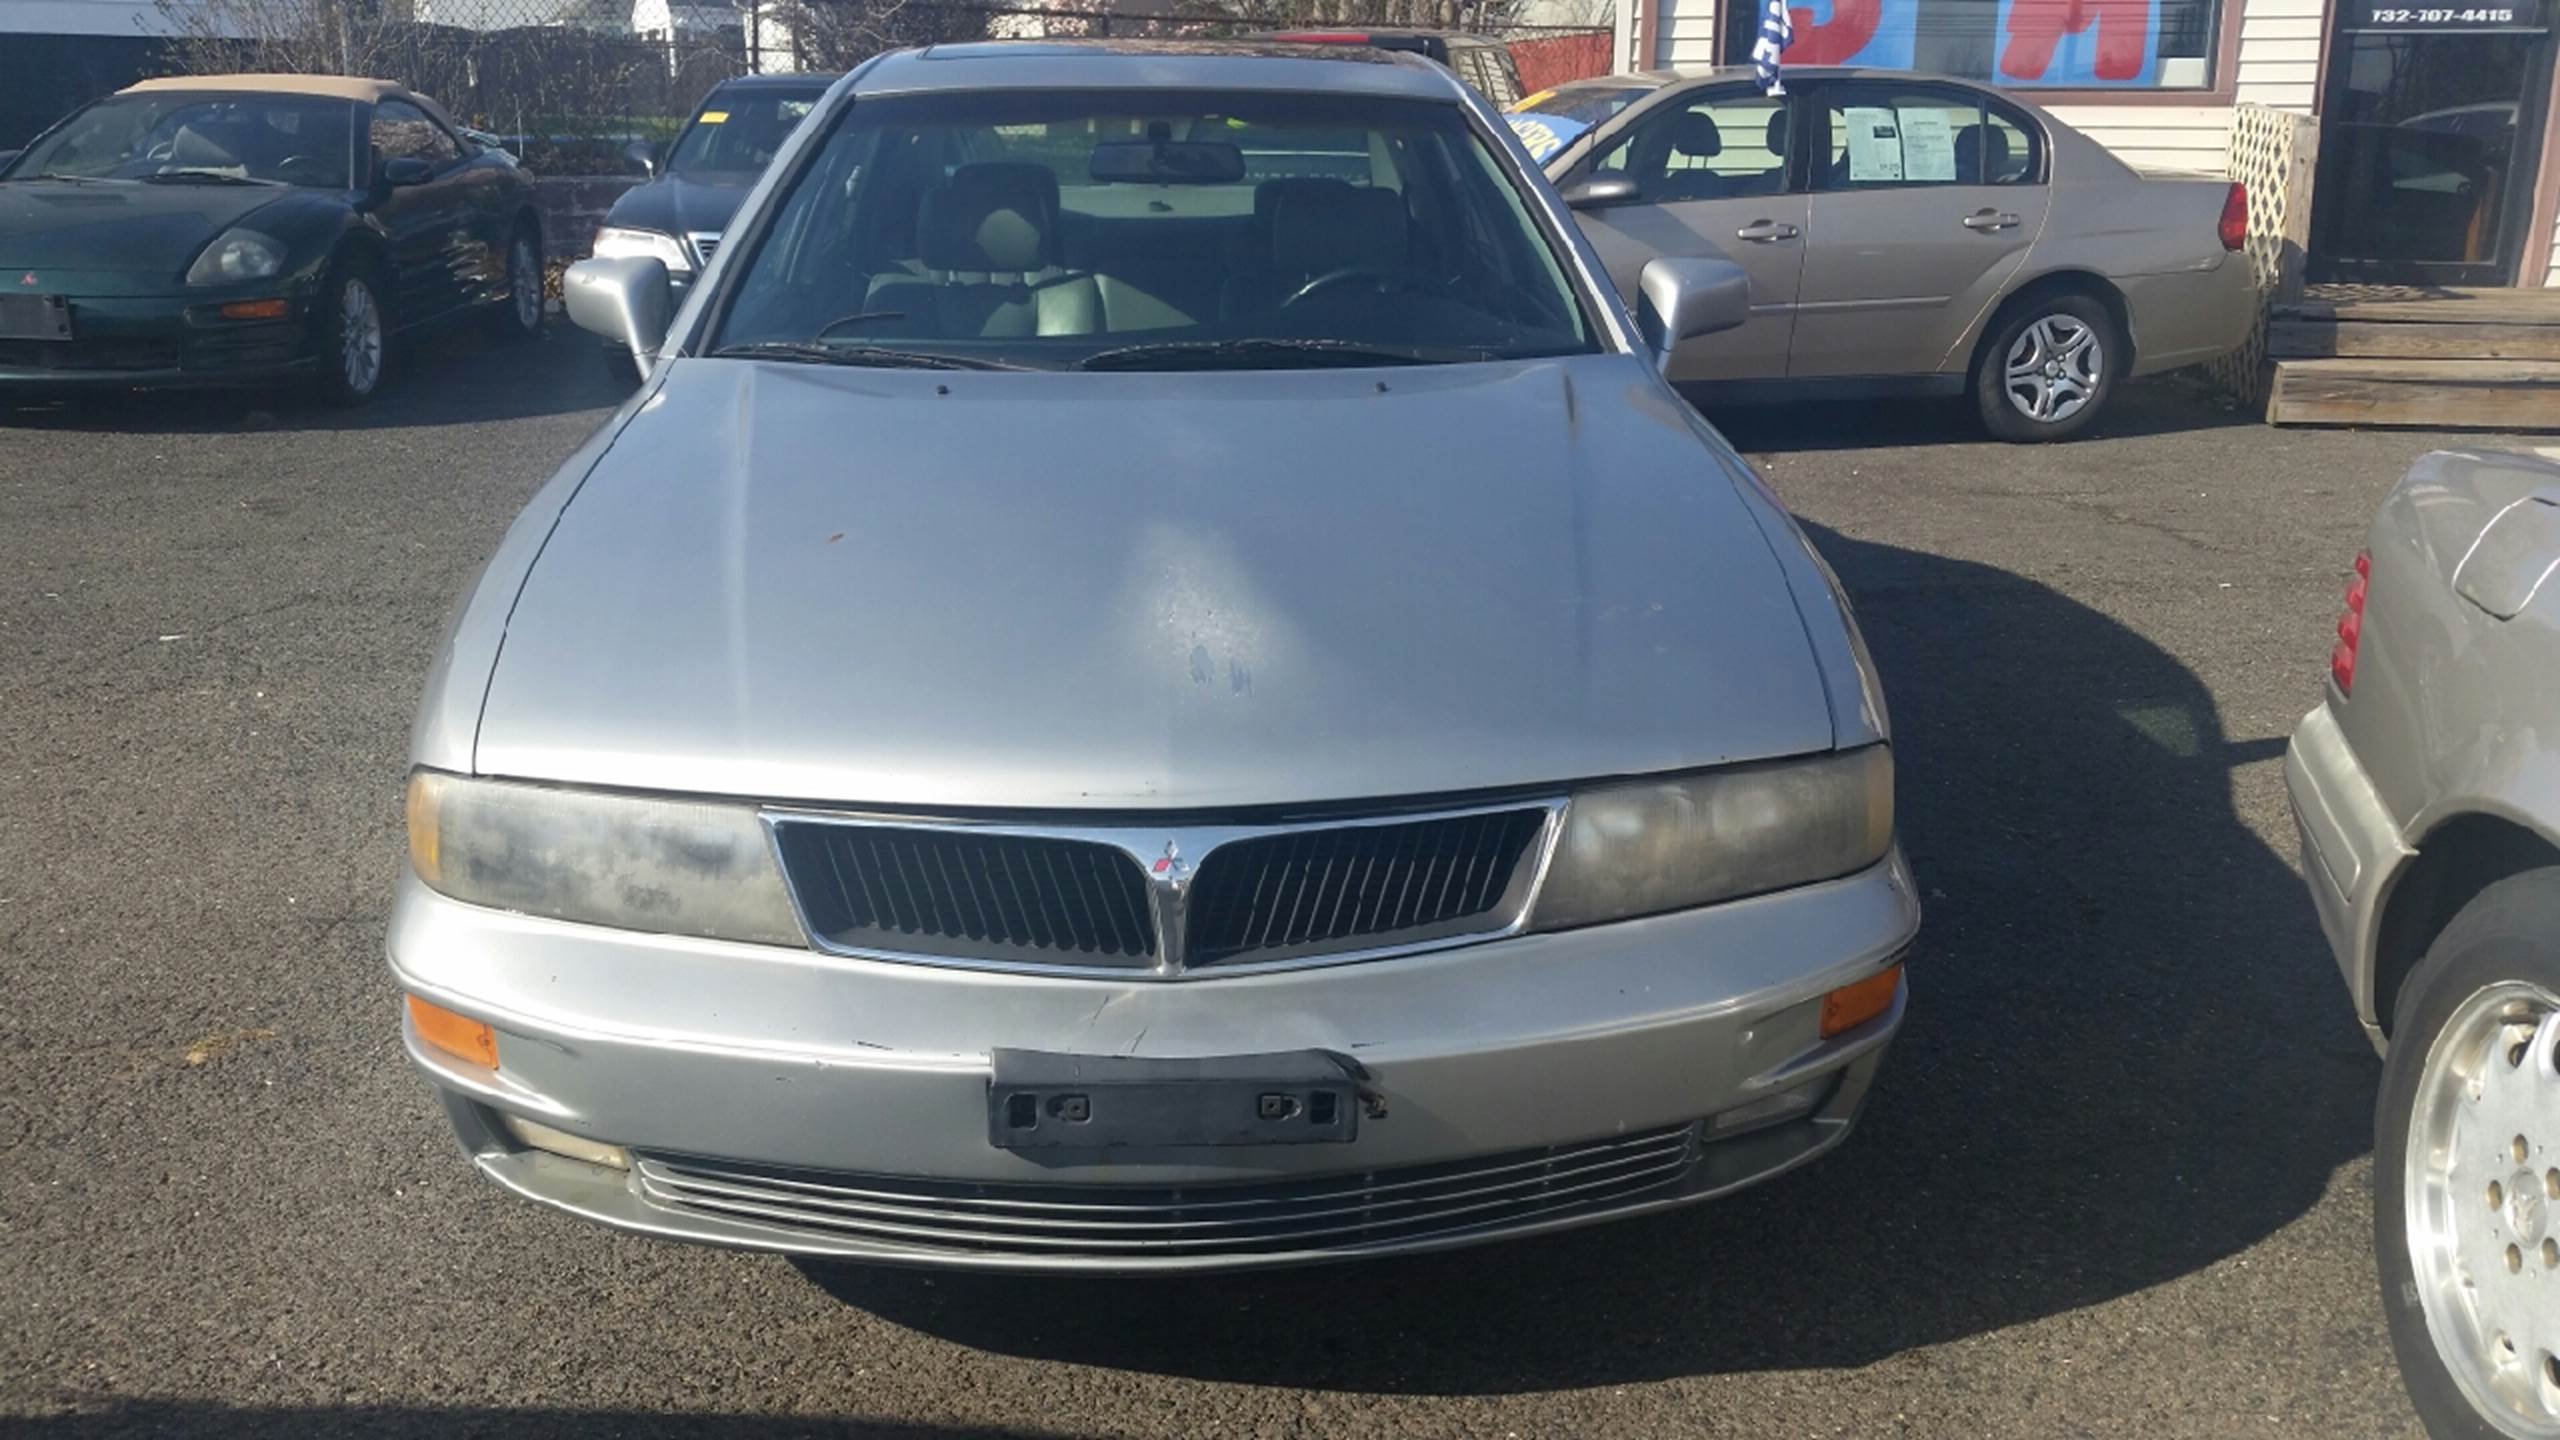 2001 Mitsubishi Diamante for sale in South Amboy, NJ